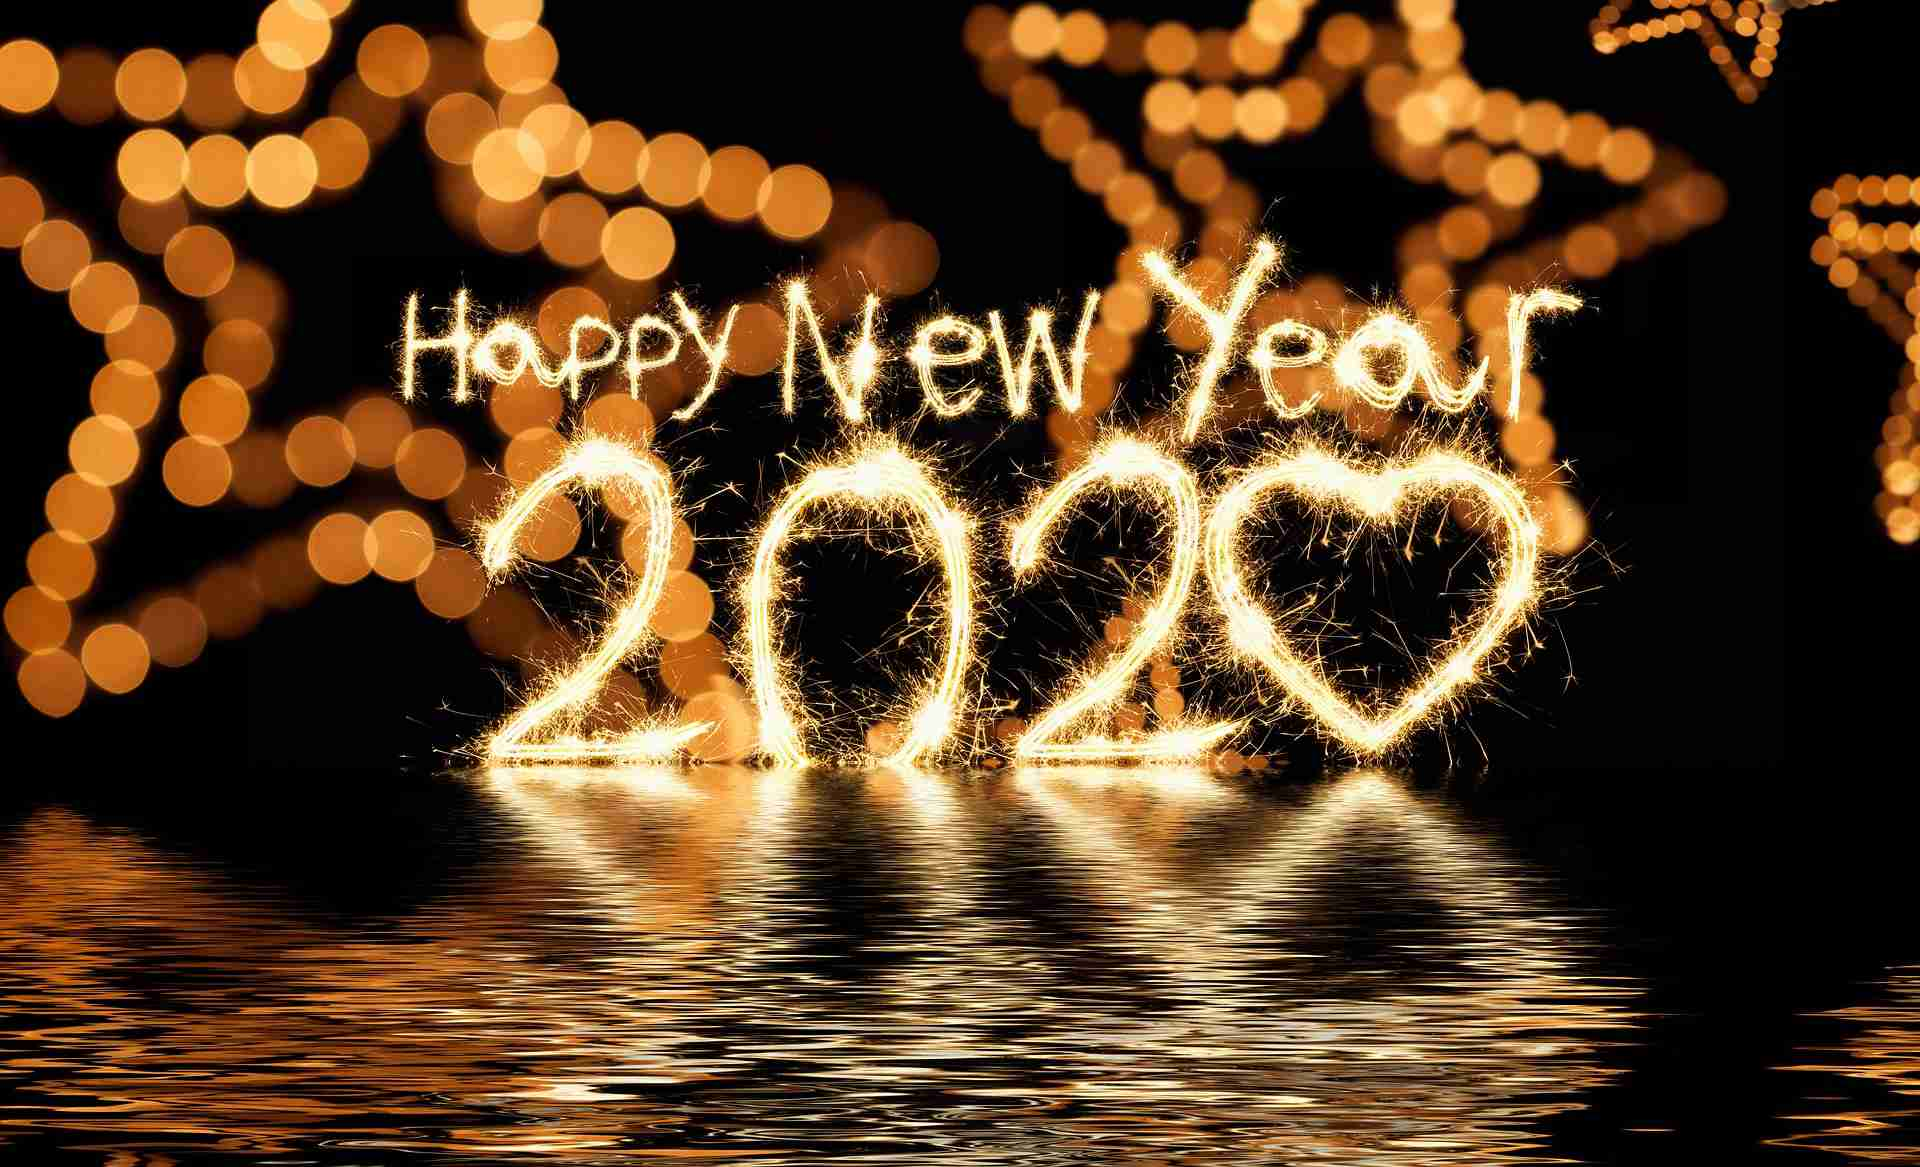 Happy New Year 2020 Wallpaper Images Download 1920x1167